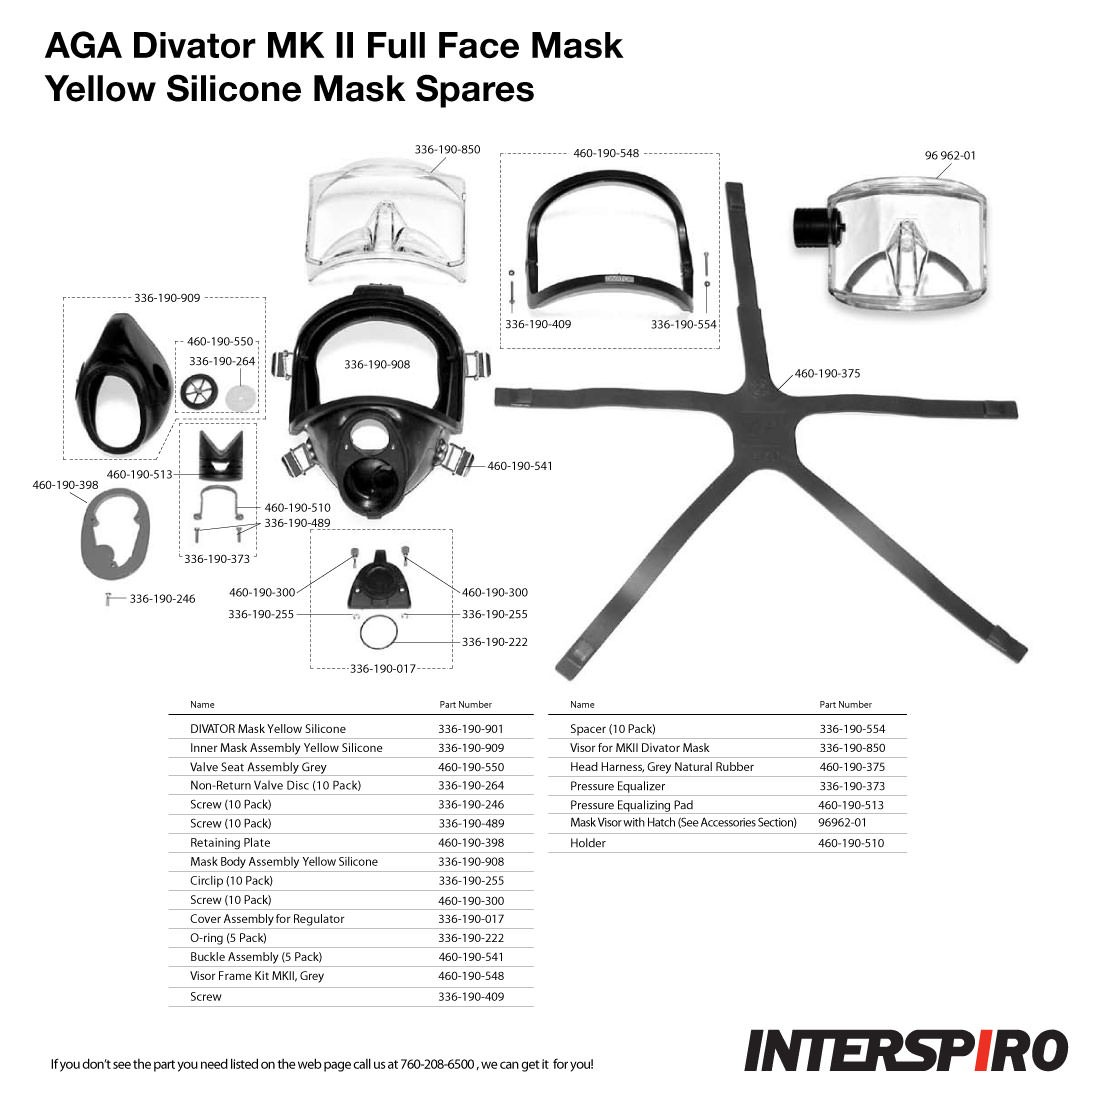 Interspiro AGA Divator MK II Full Face Mask with Demand Regulator - Mask Spares